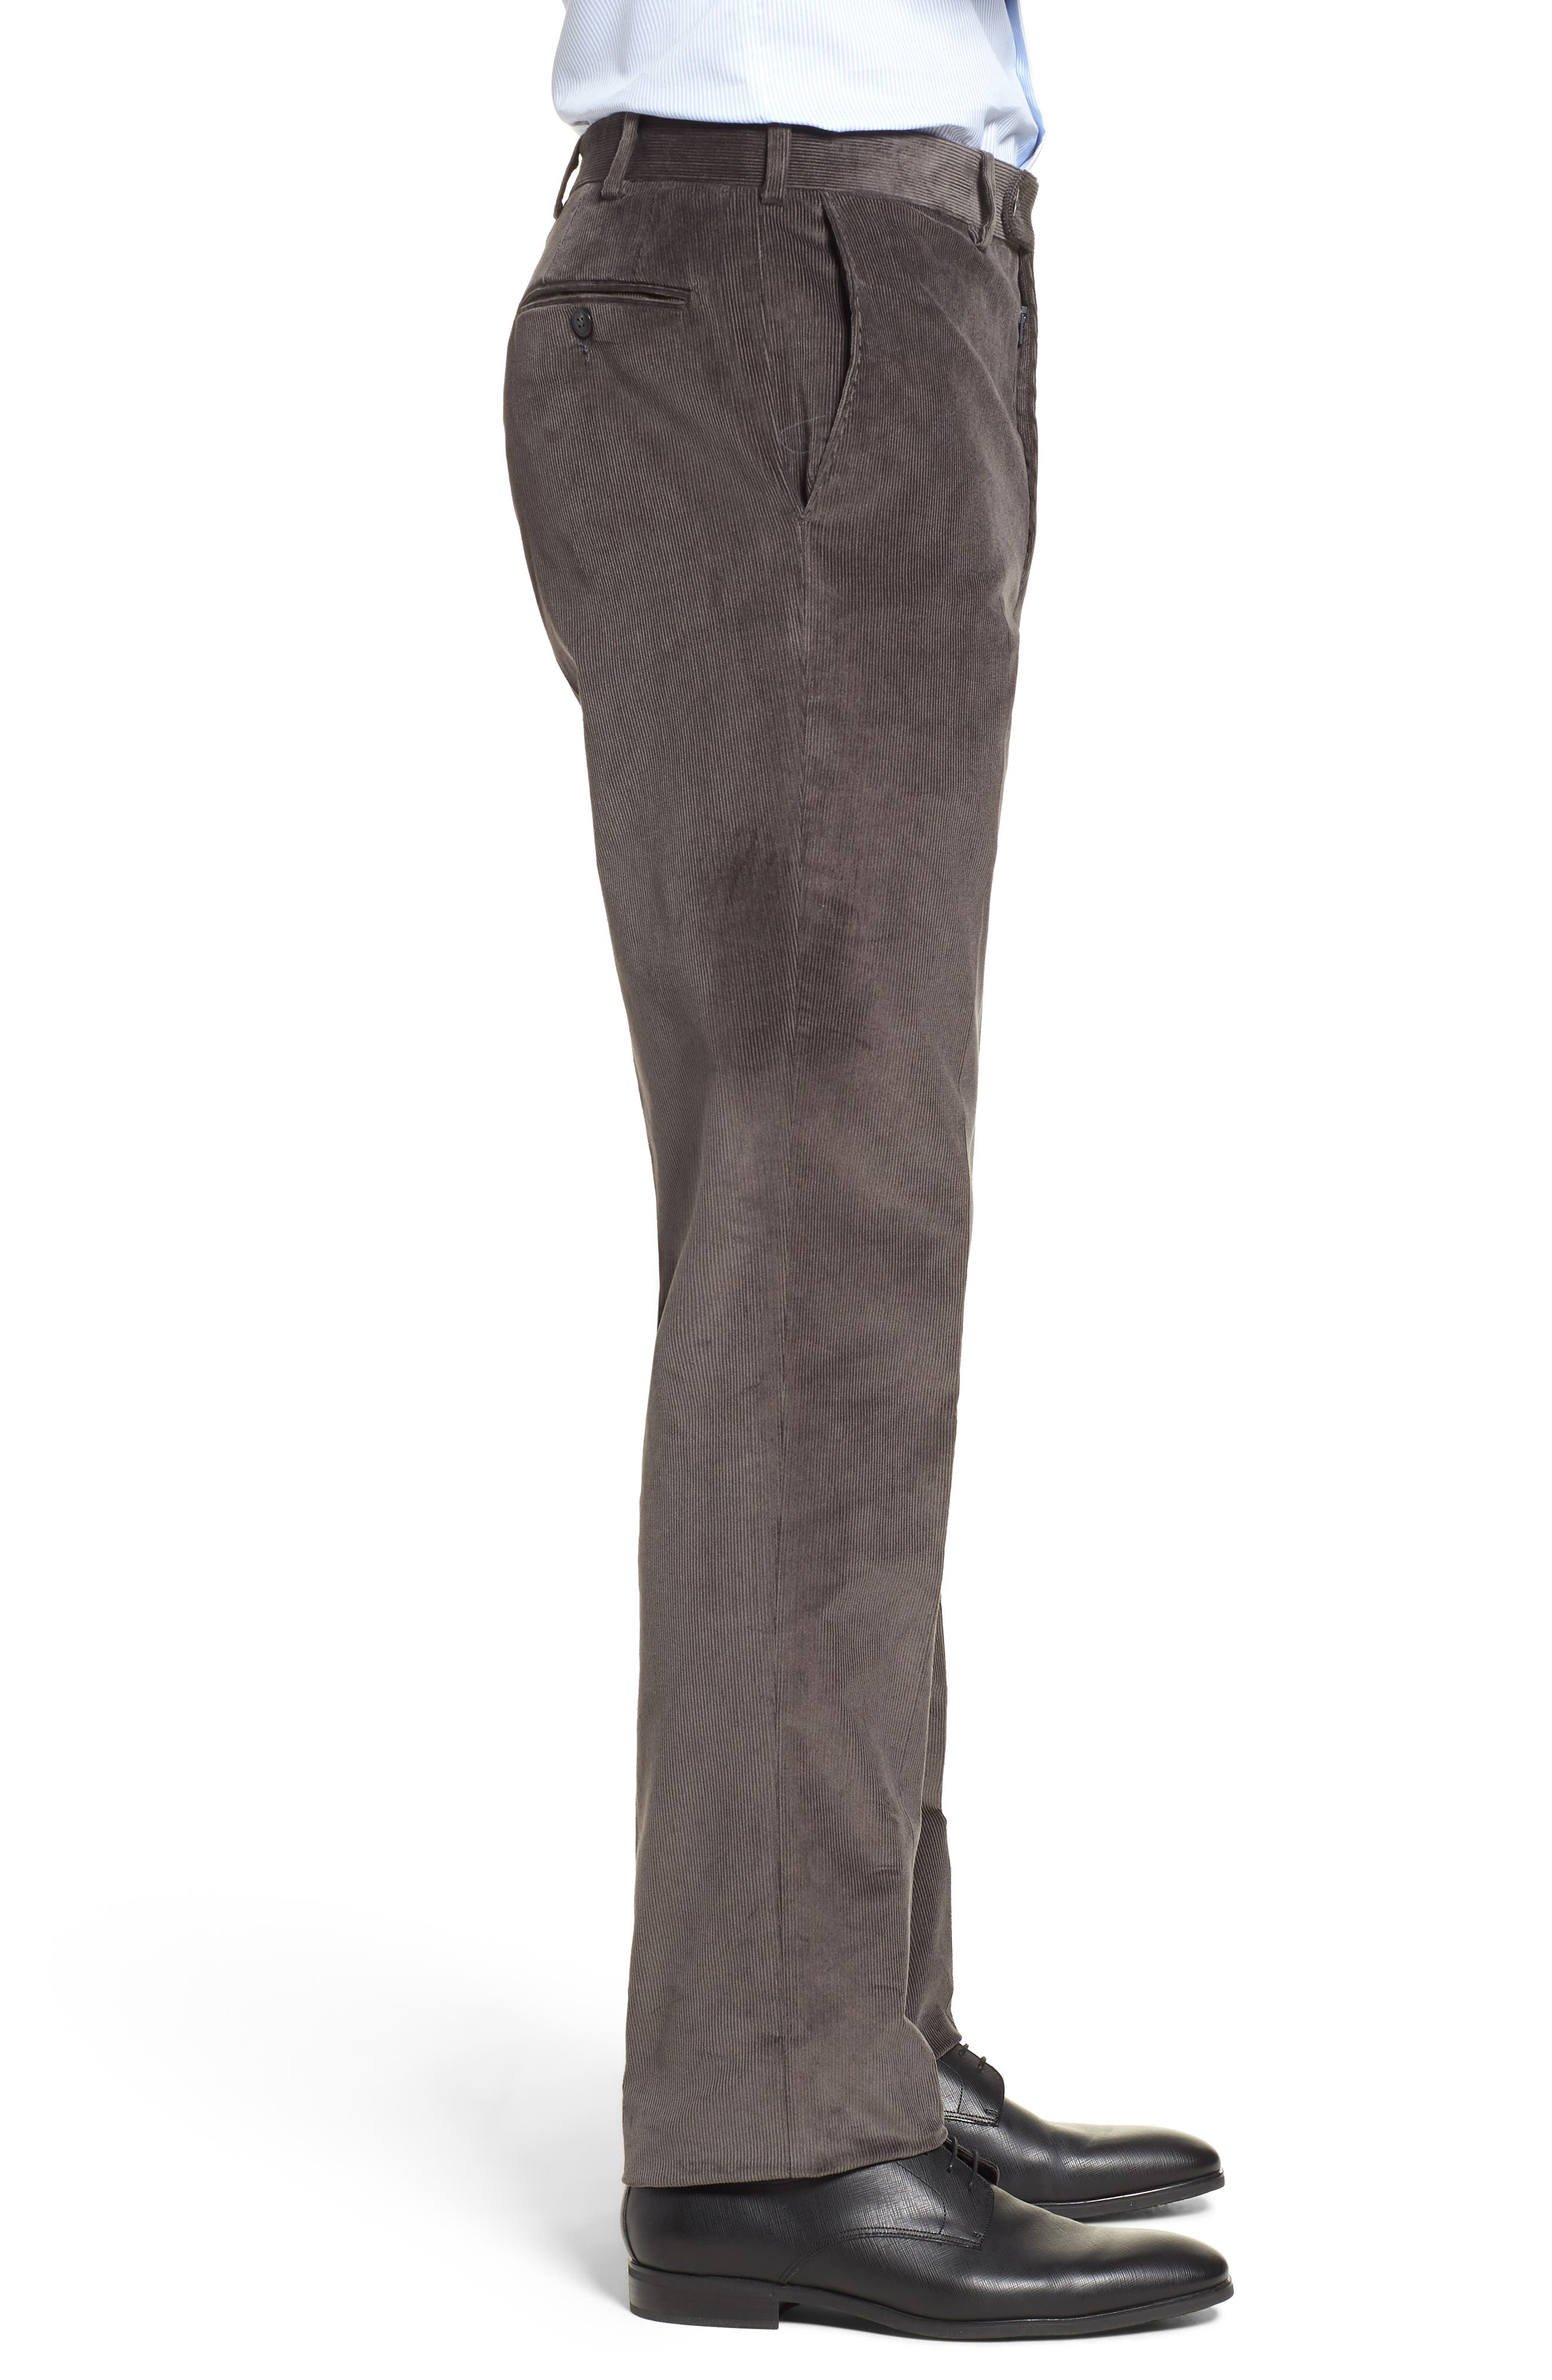 Torino Traditional Fit Flat Front Corduroy Trousers,                             Alternate thumbnail 3, color,                             GREY